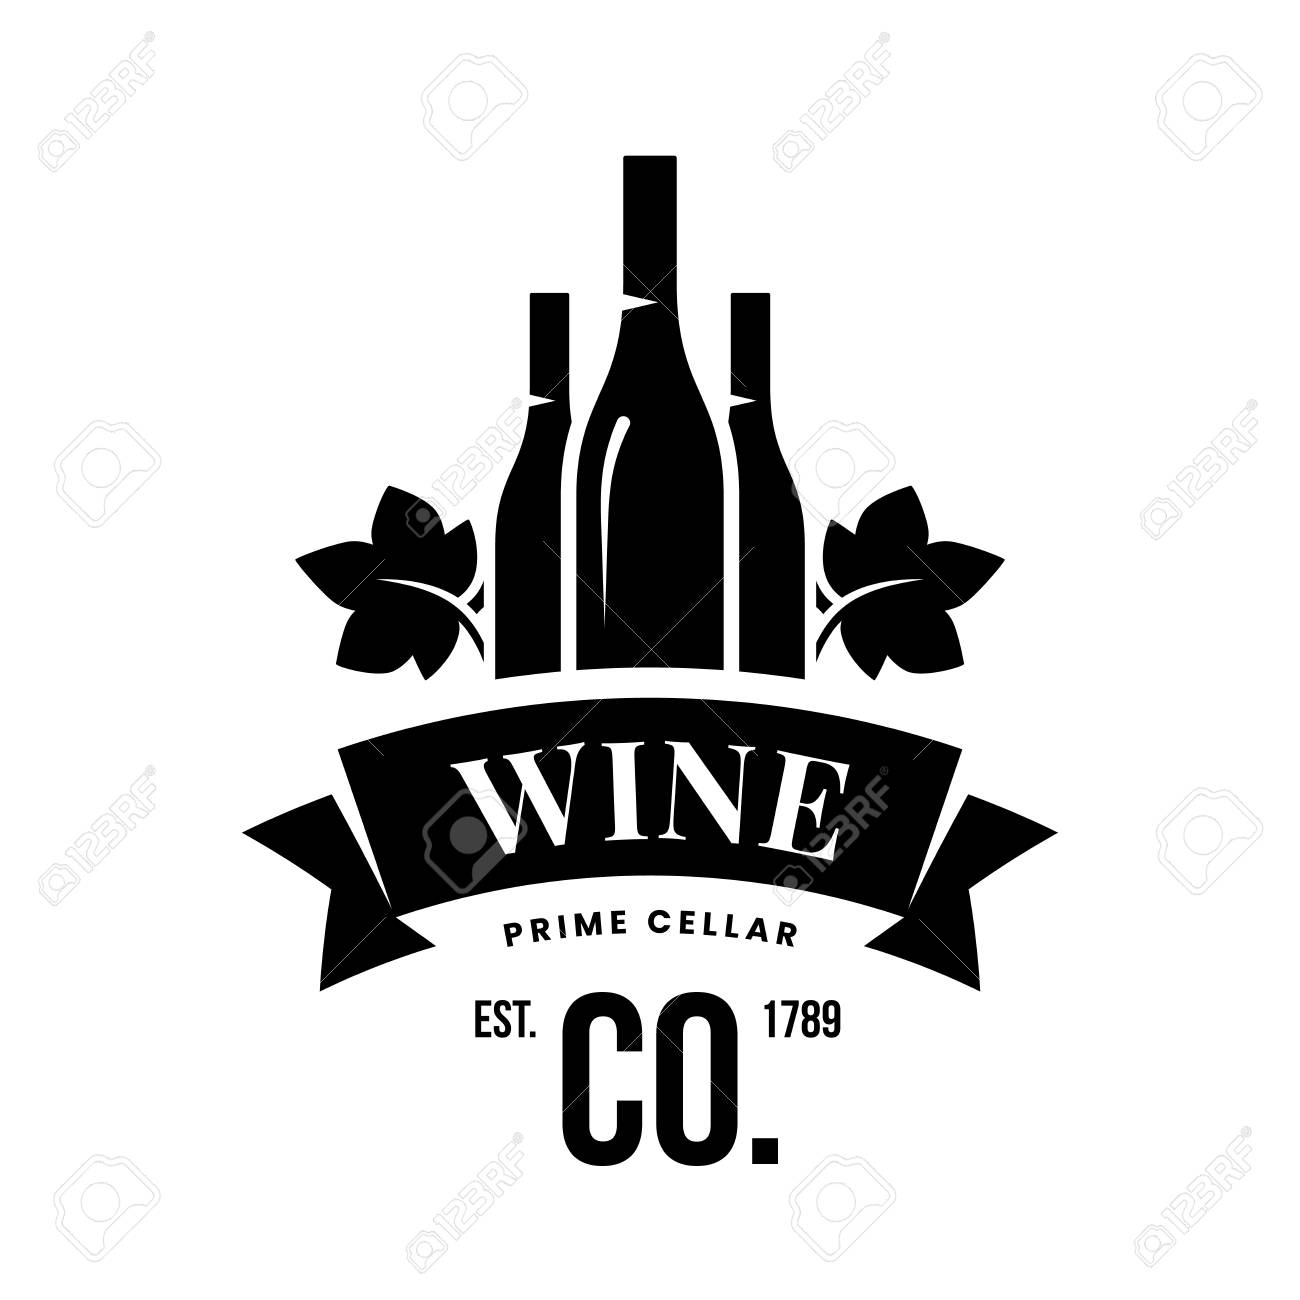 Modern wine vector logo sign for tavern, restaurant, house, shop, store, club and cellar isolated on white background. Premium quality vinery logotype illustration. Fashion brand badge design template. - 126498939